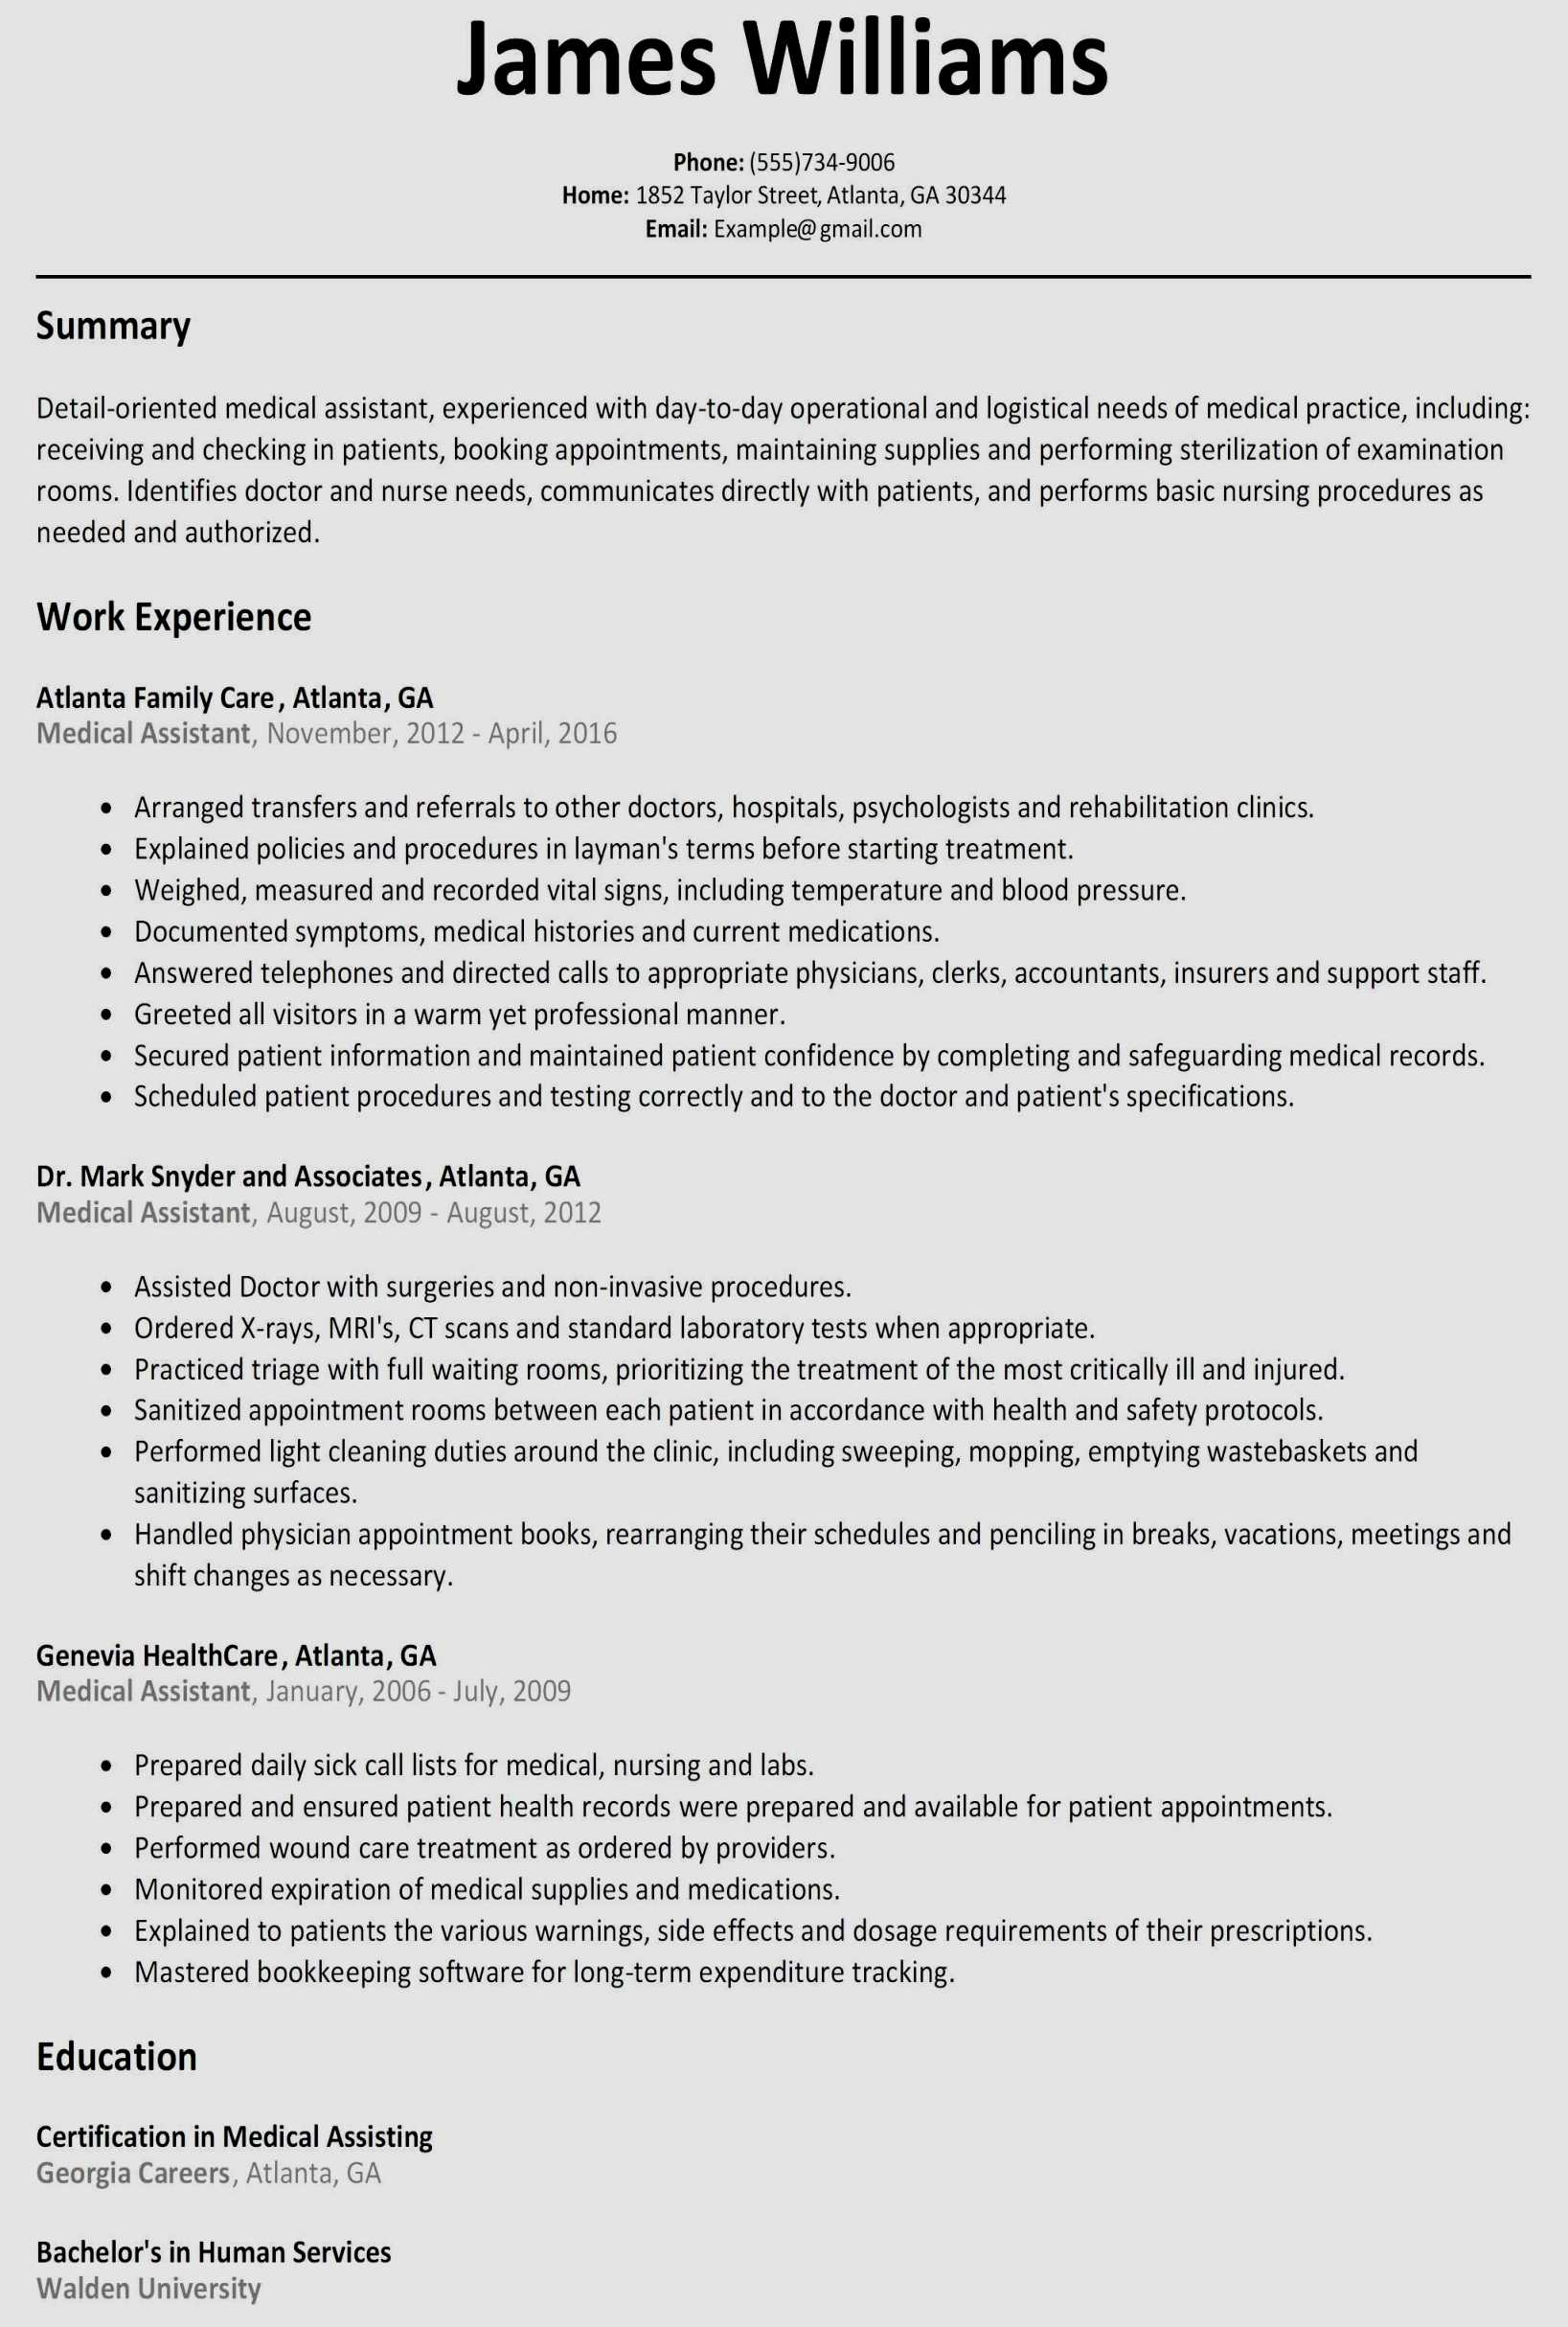 8 service industry resume template ideas